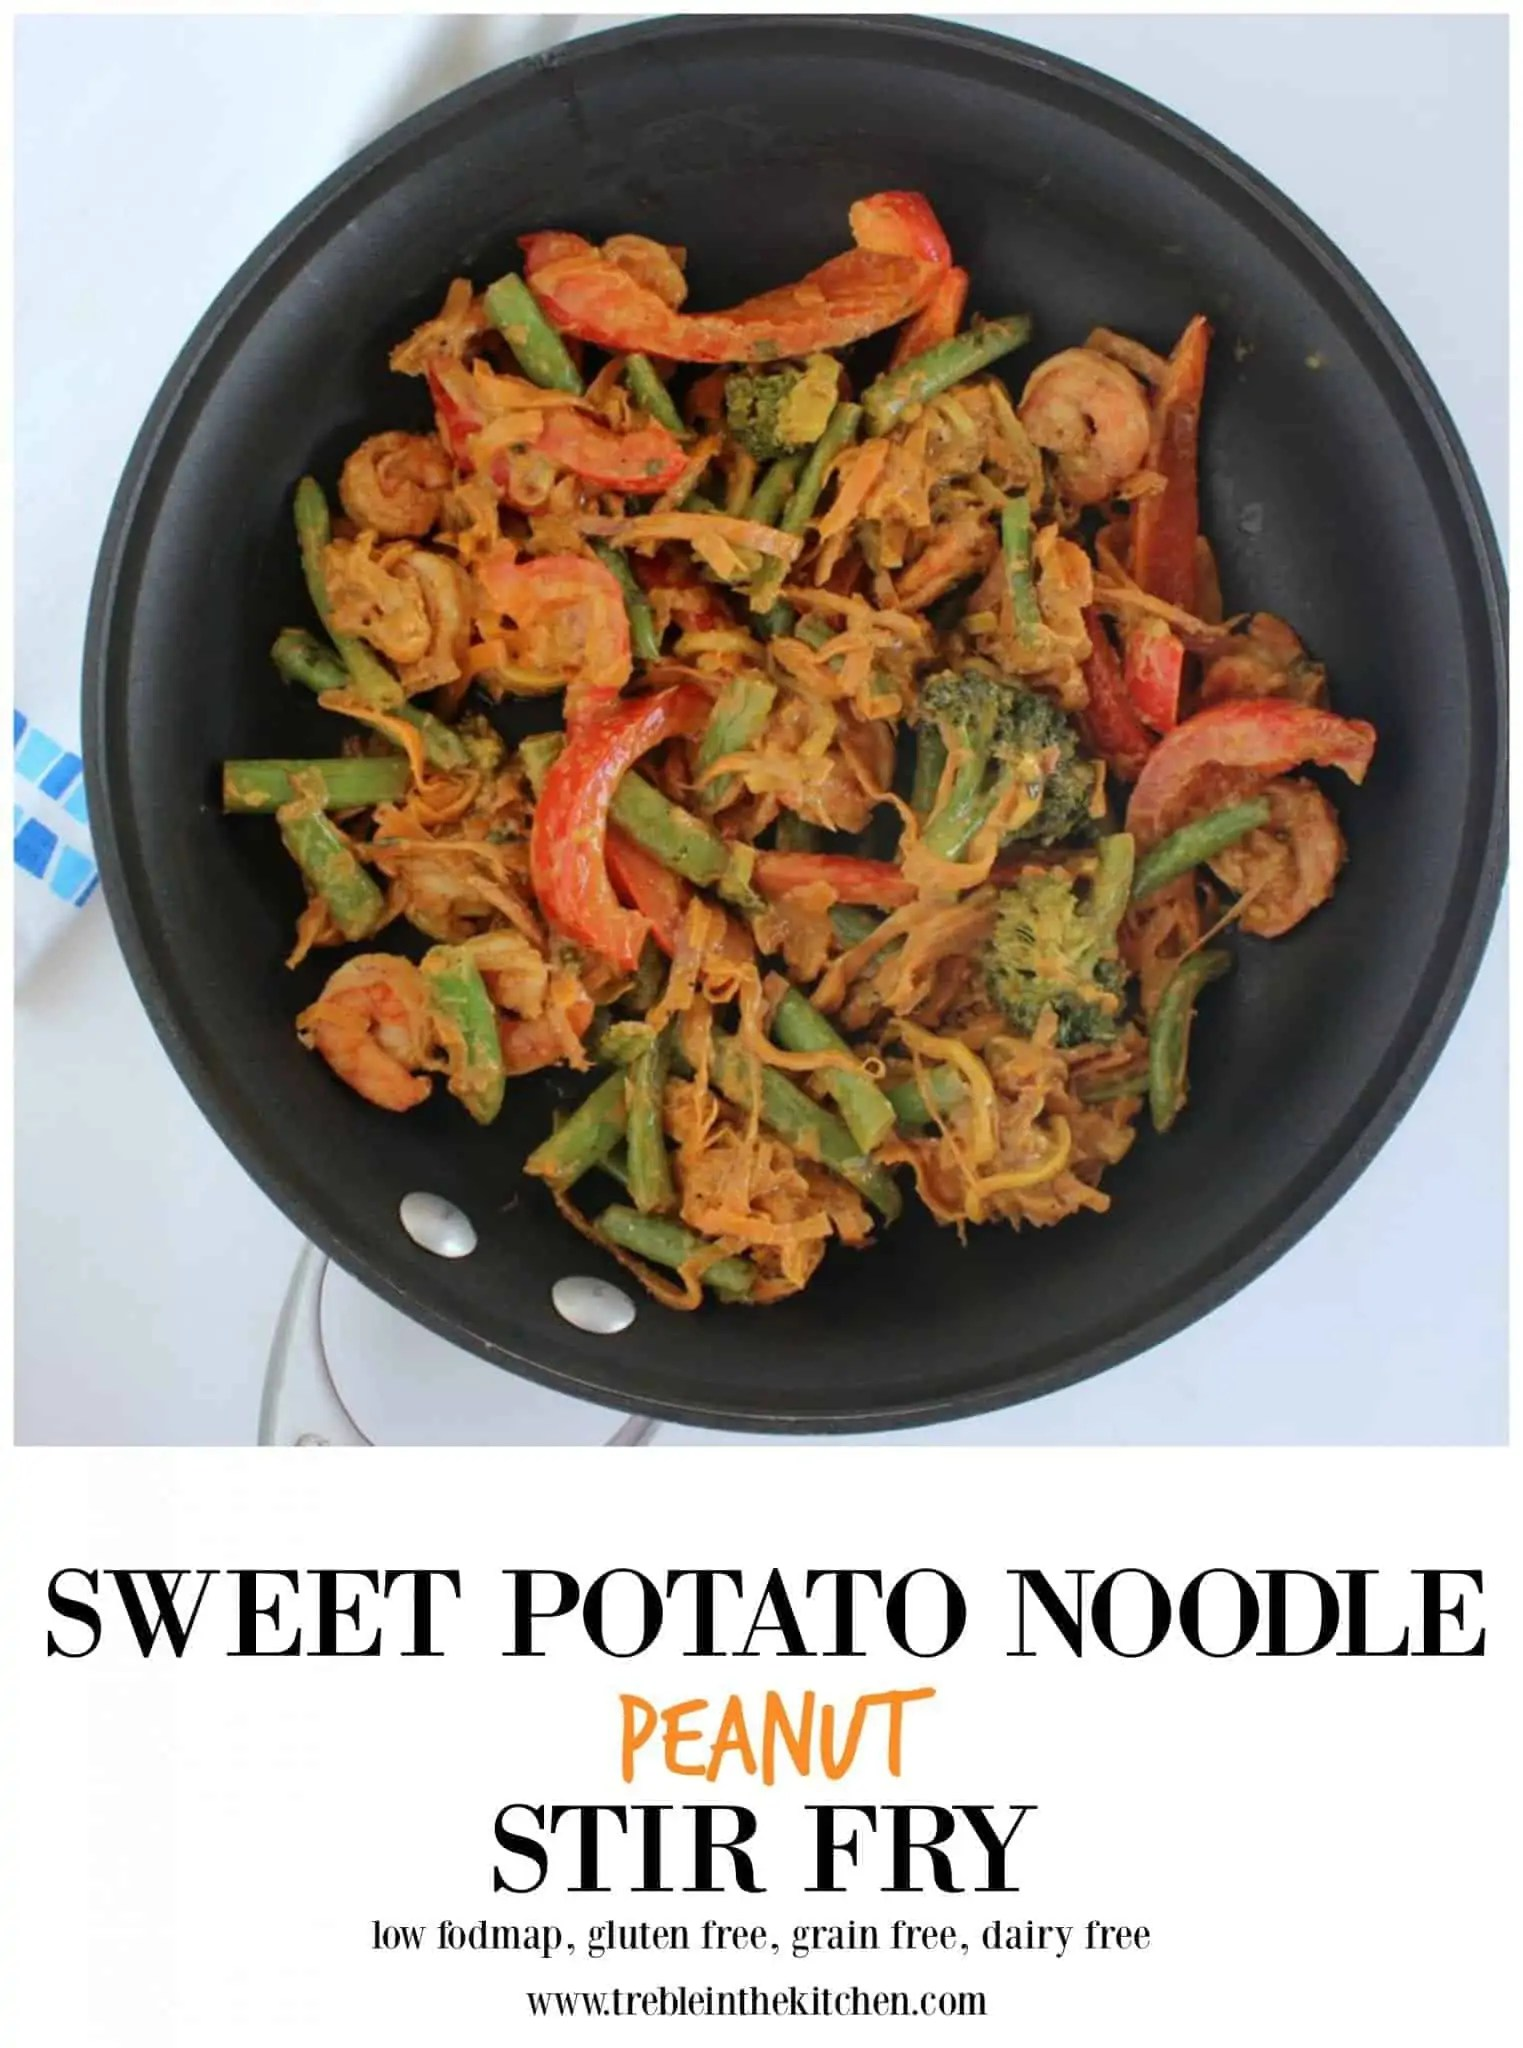 Sweet Potato Noodle Peanut Stir Fry from Treble in the Kitchen